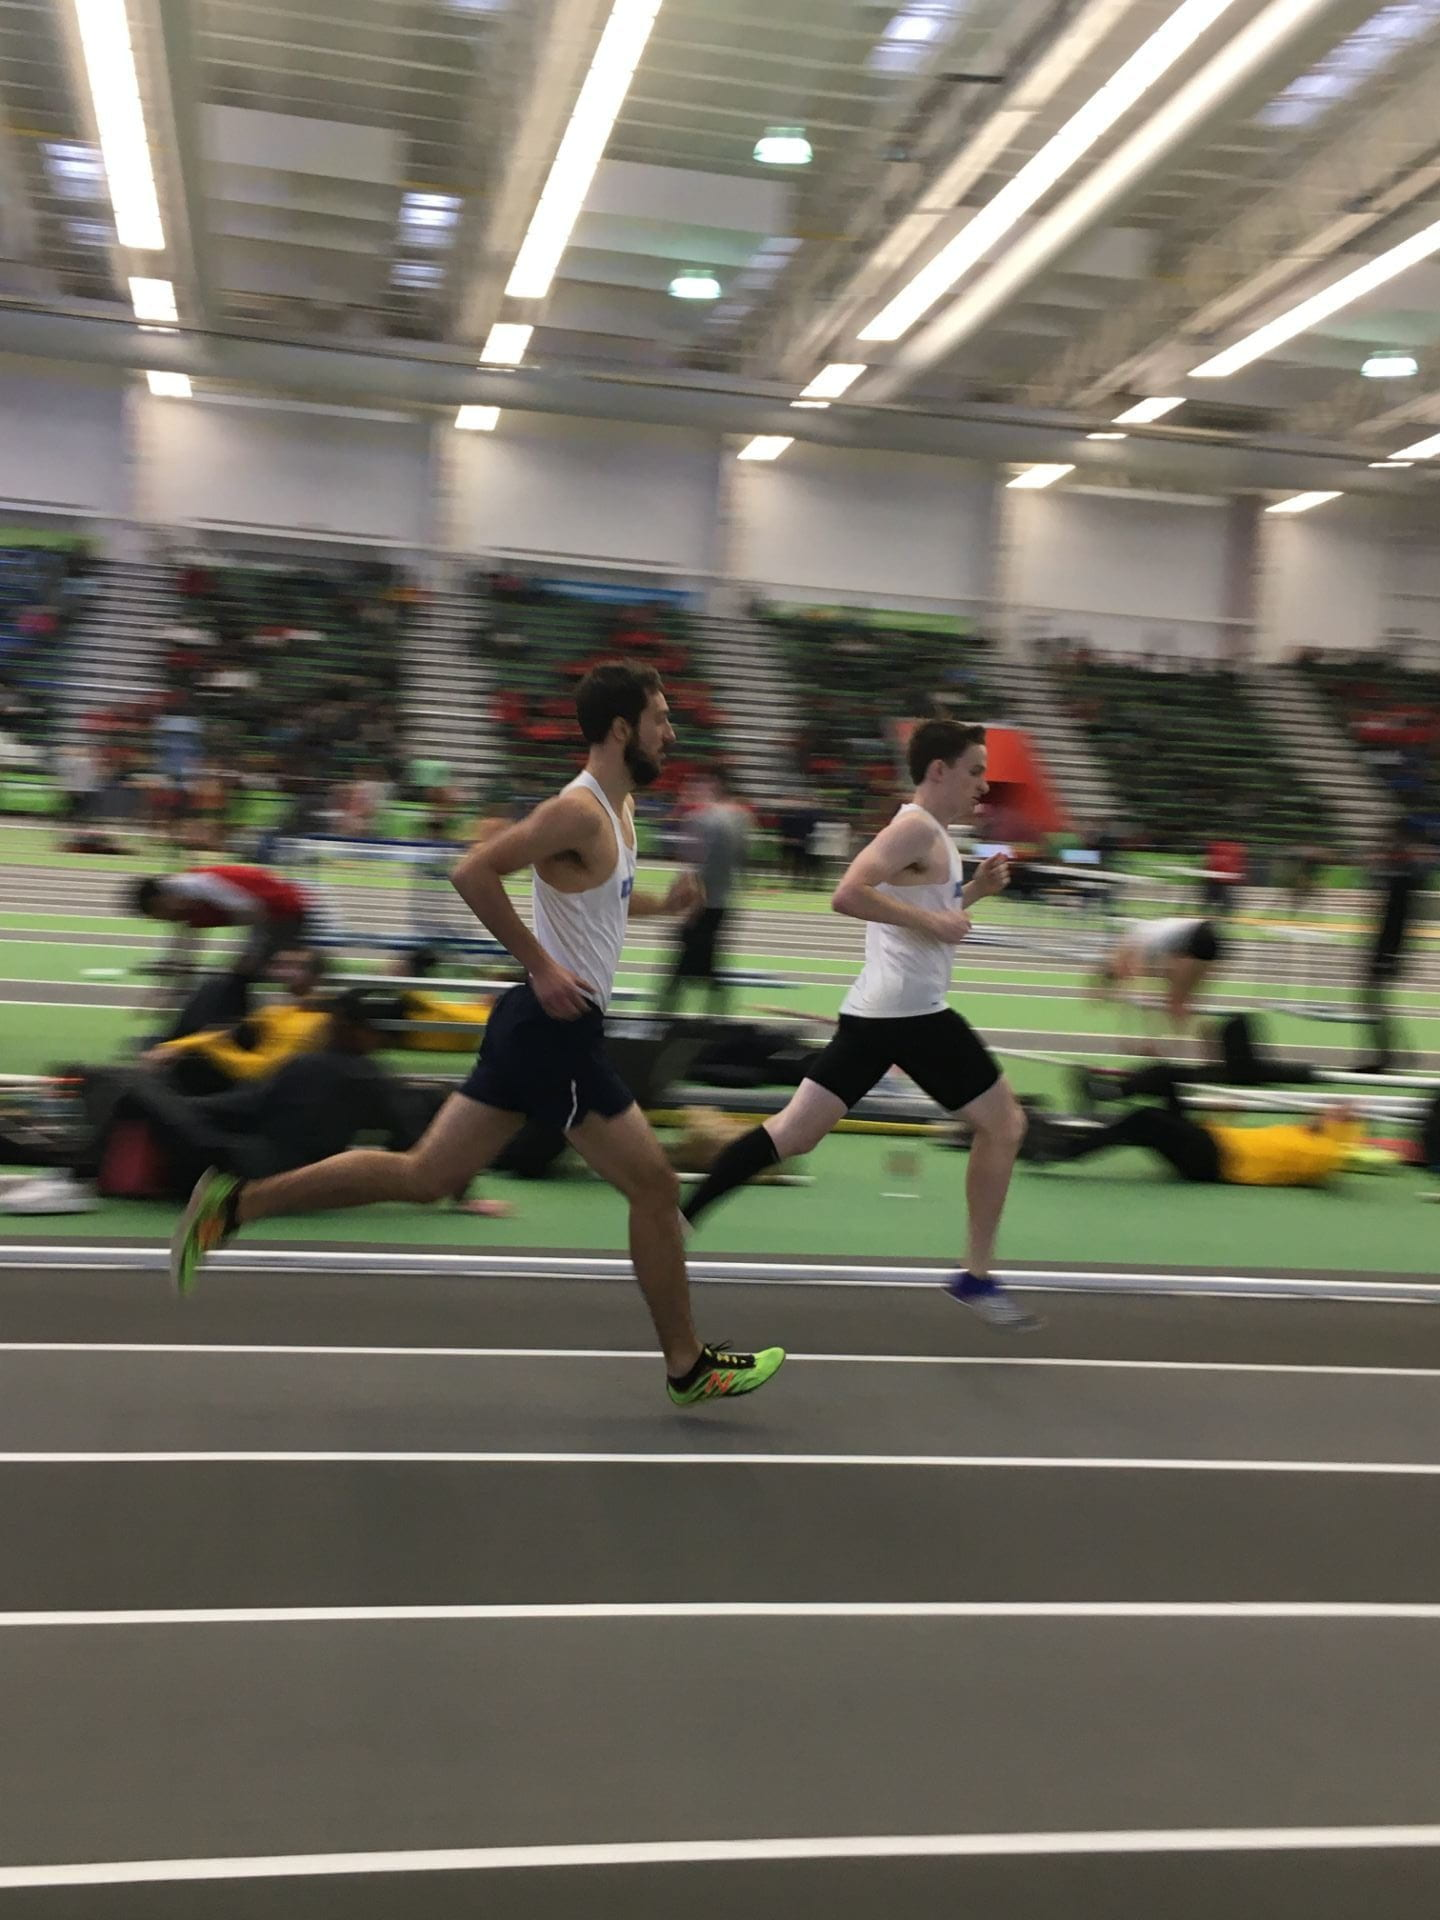 Pat LaPorte and Paul Filipow kicked some serious butt in the mile!